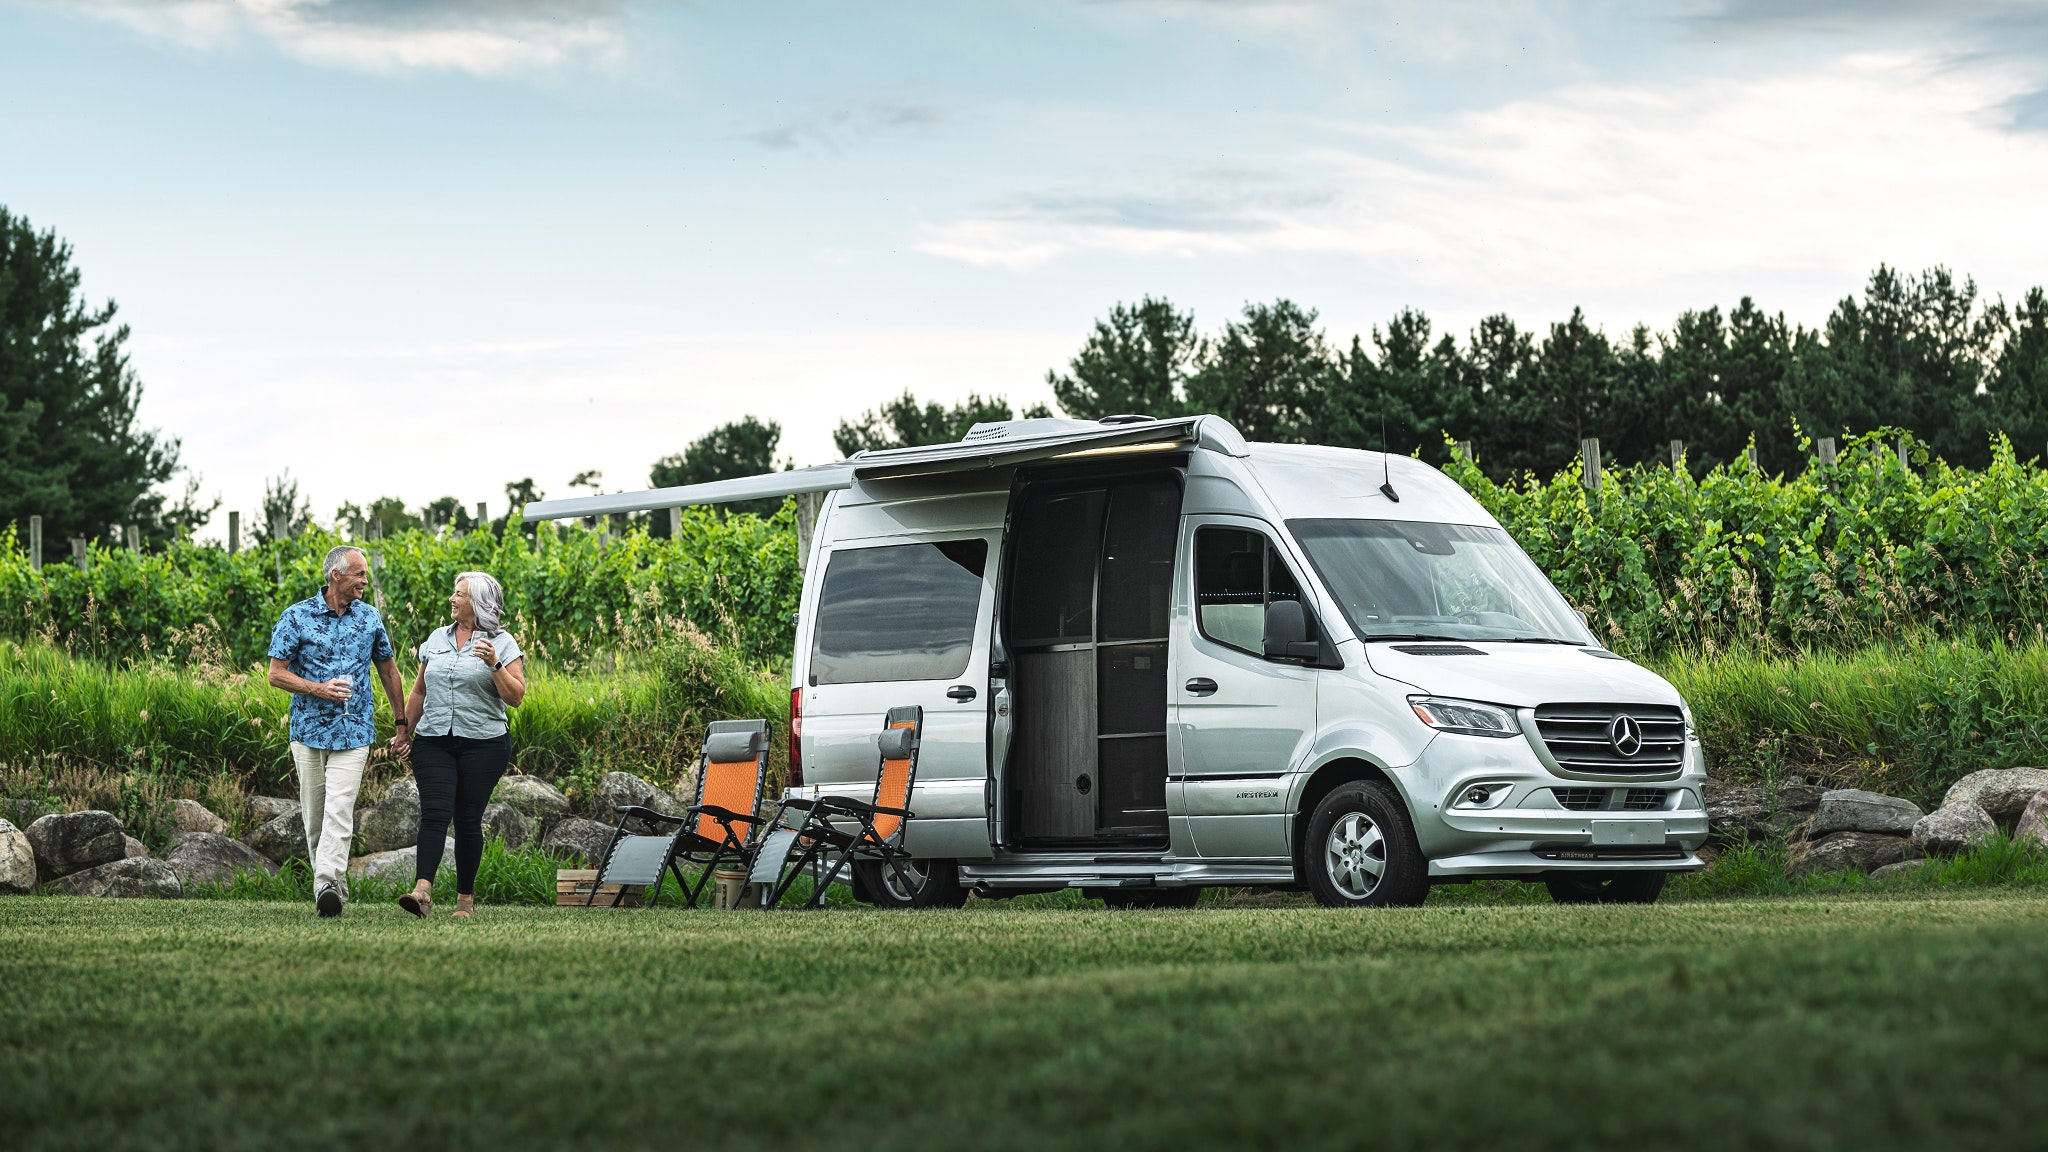 Airstream-Interstate-19-Luxury-Class-B-RV-Motorhome-Web-Header